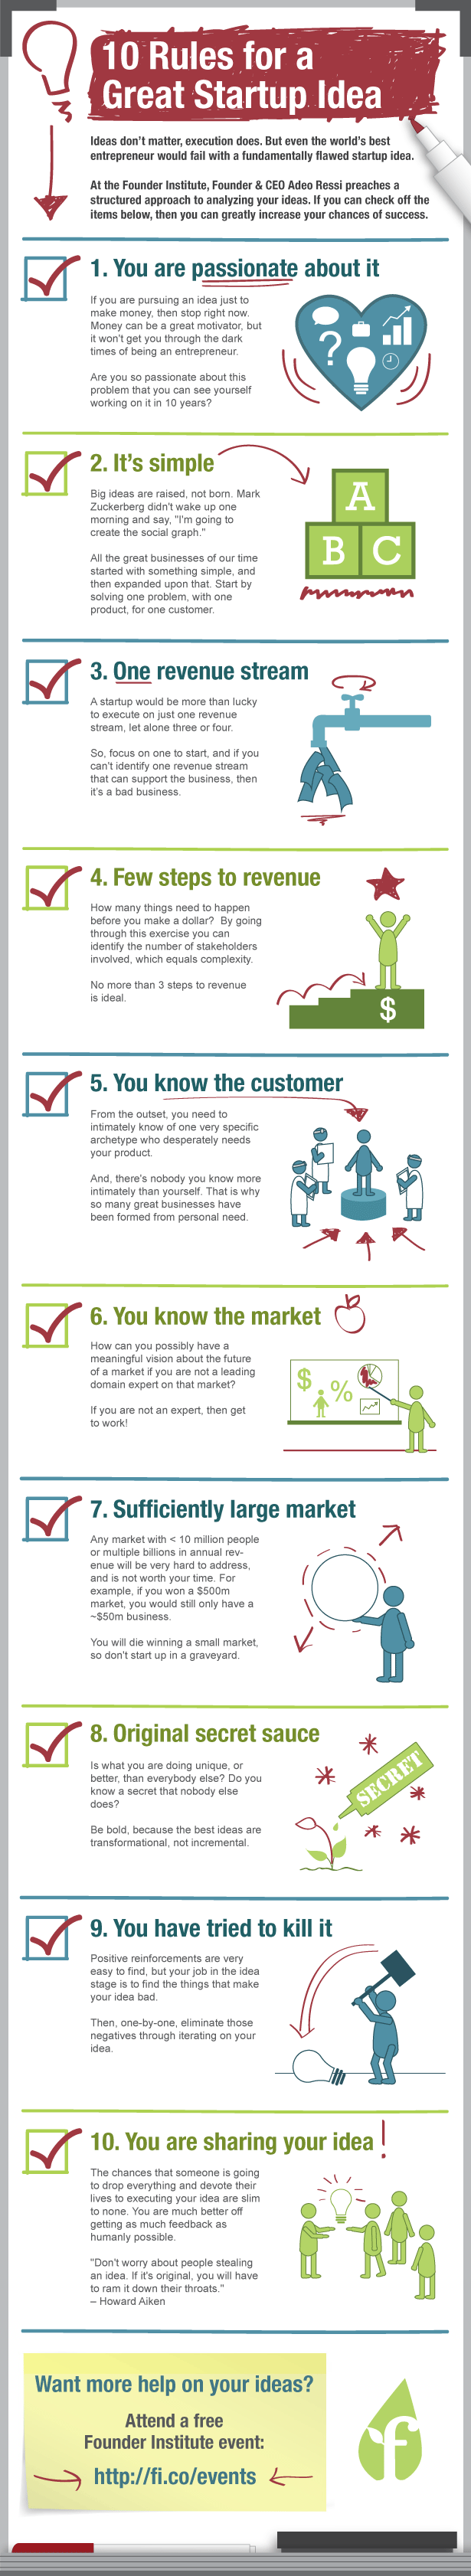 10-startup-idea-rules-infographic